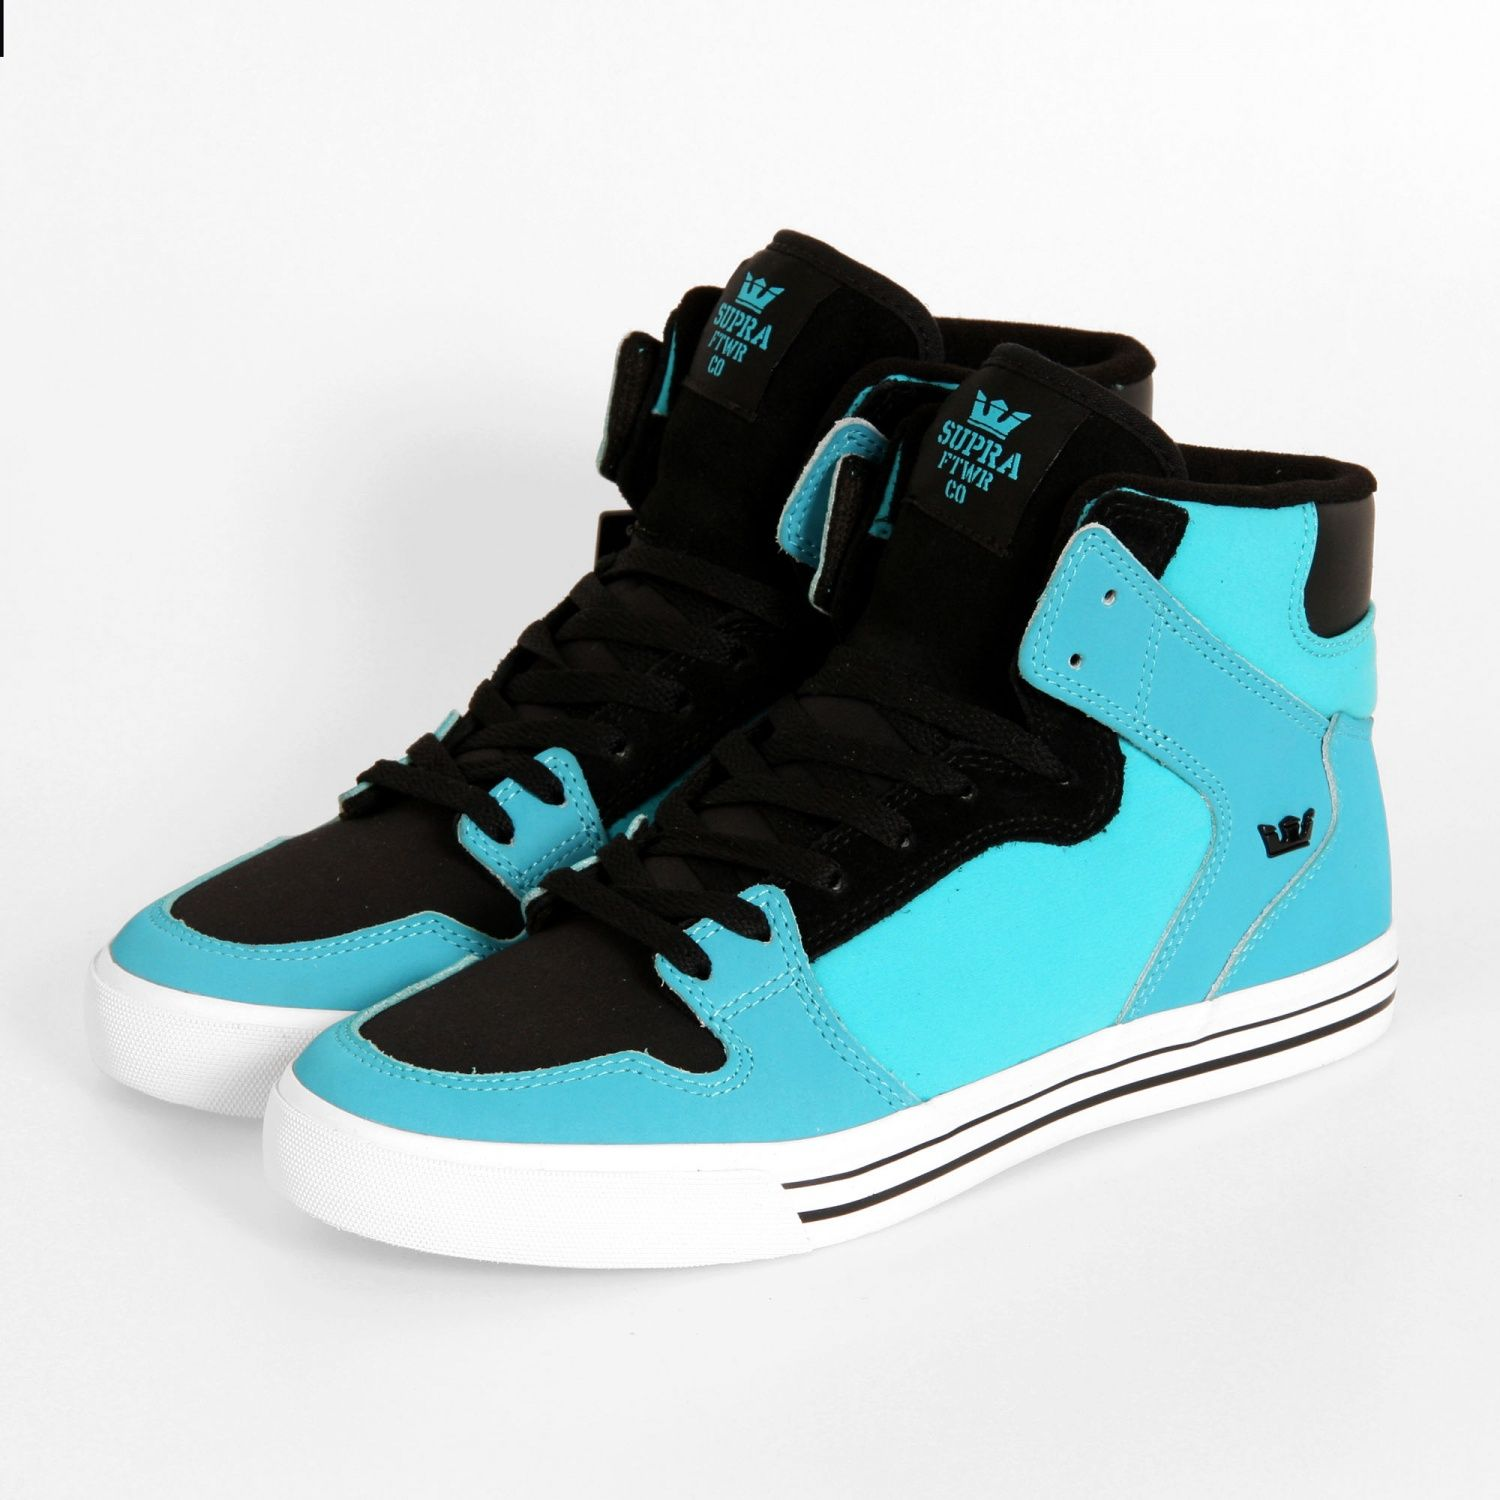 new product d5e1b 7a923 Supra Shoes - Vaider (Blue Black White)   shoes   high tops   women s shoes